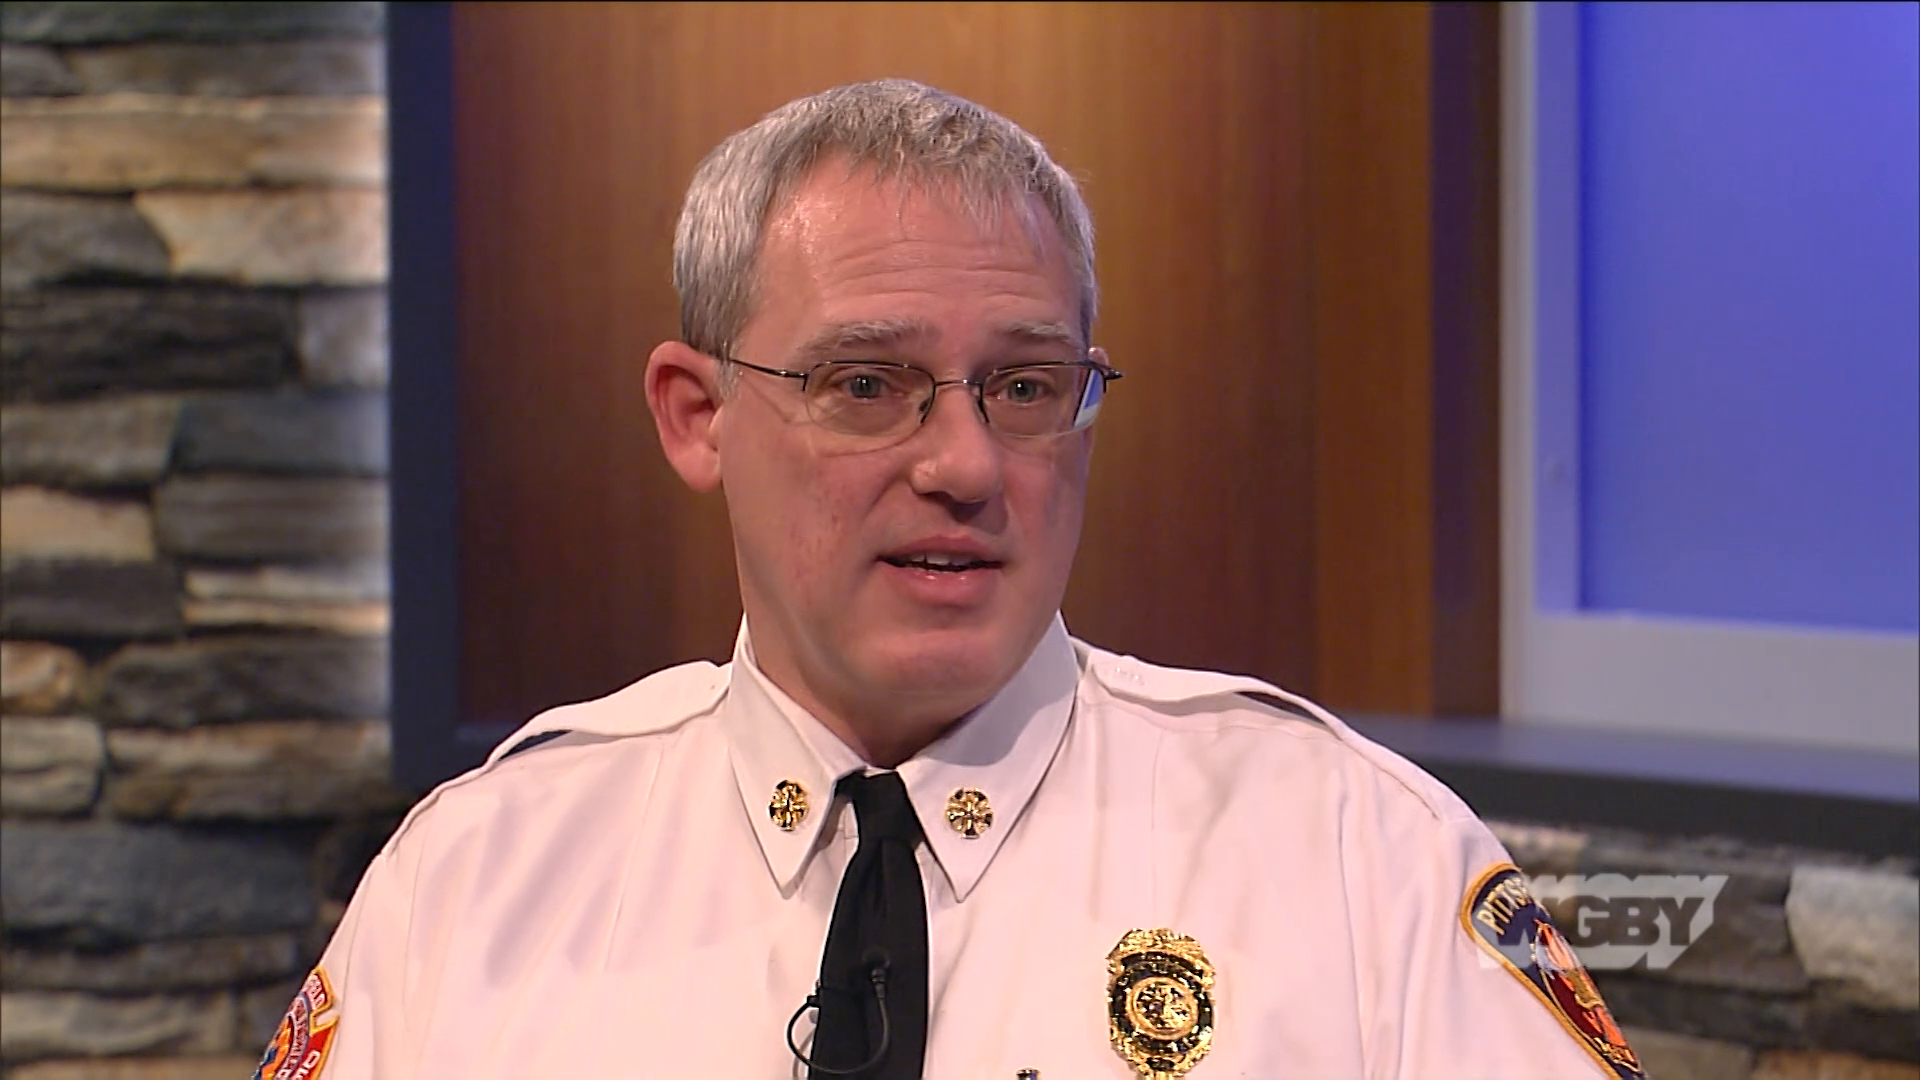 Pittsfield Fire Chief Thomas Sammons discusses the recent spate of house fires and offers some simple home fire safety tips to prevent house fires.